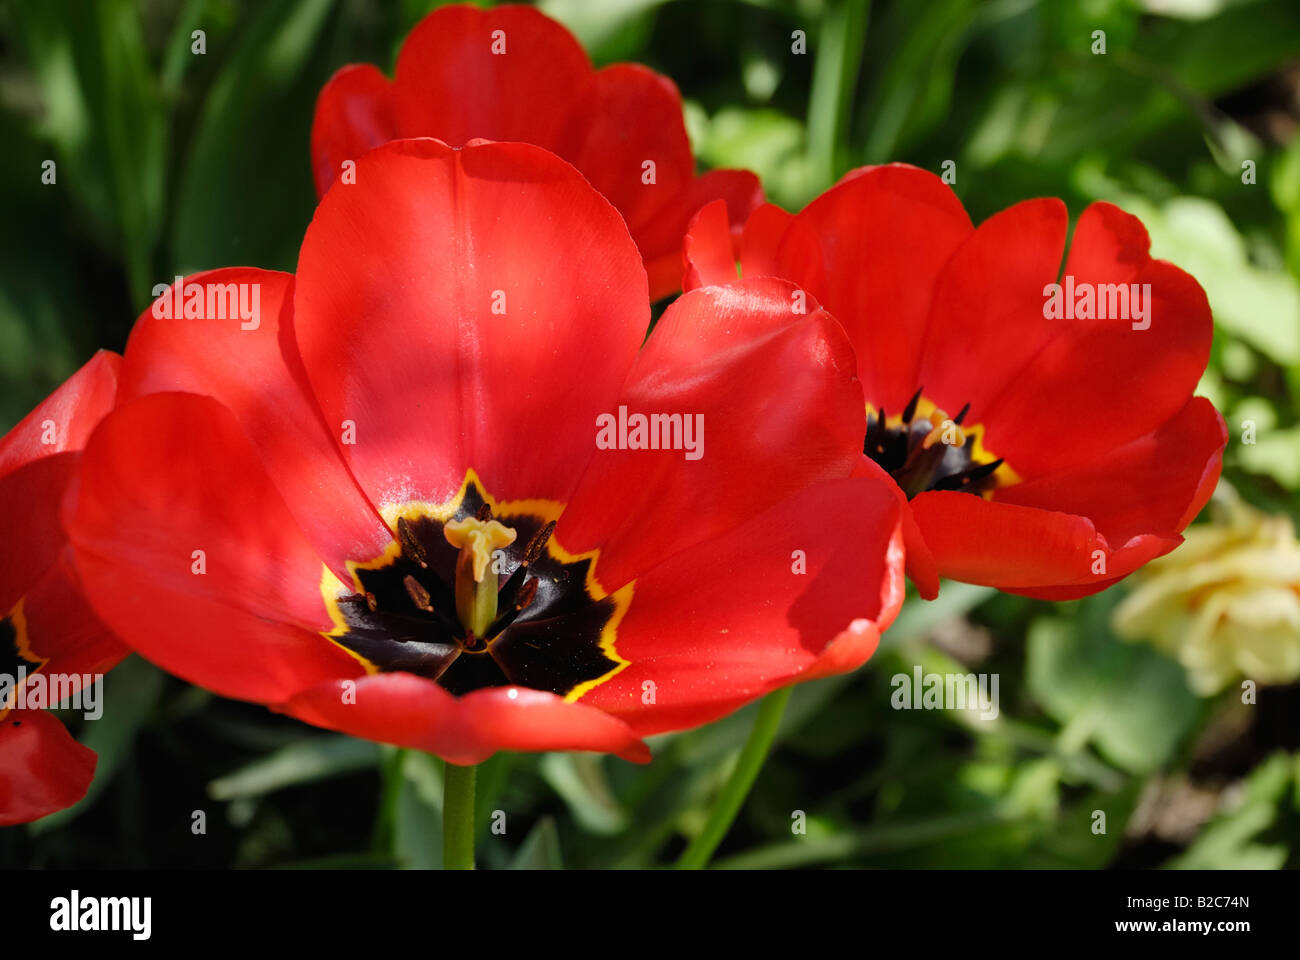 Red Tulip flower (Tulipa) - Stock Image